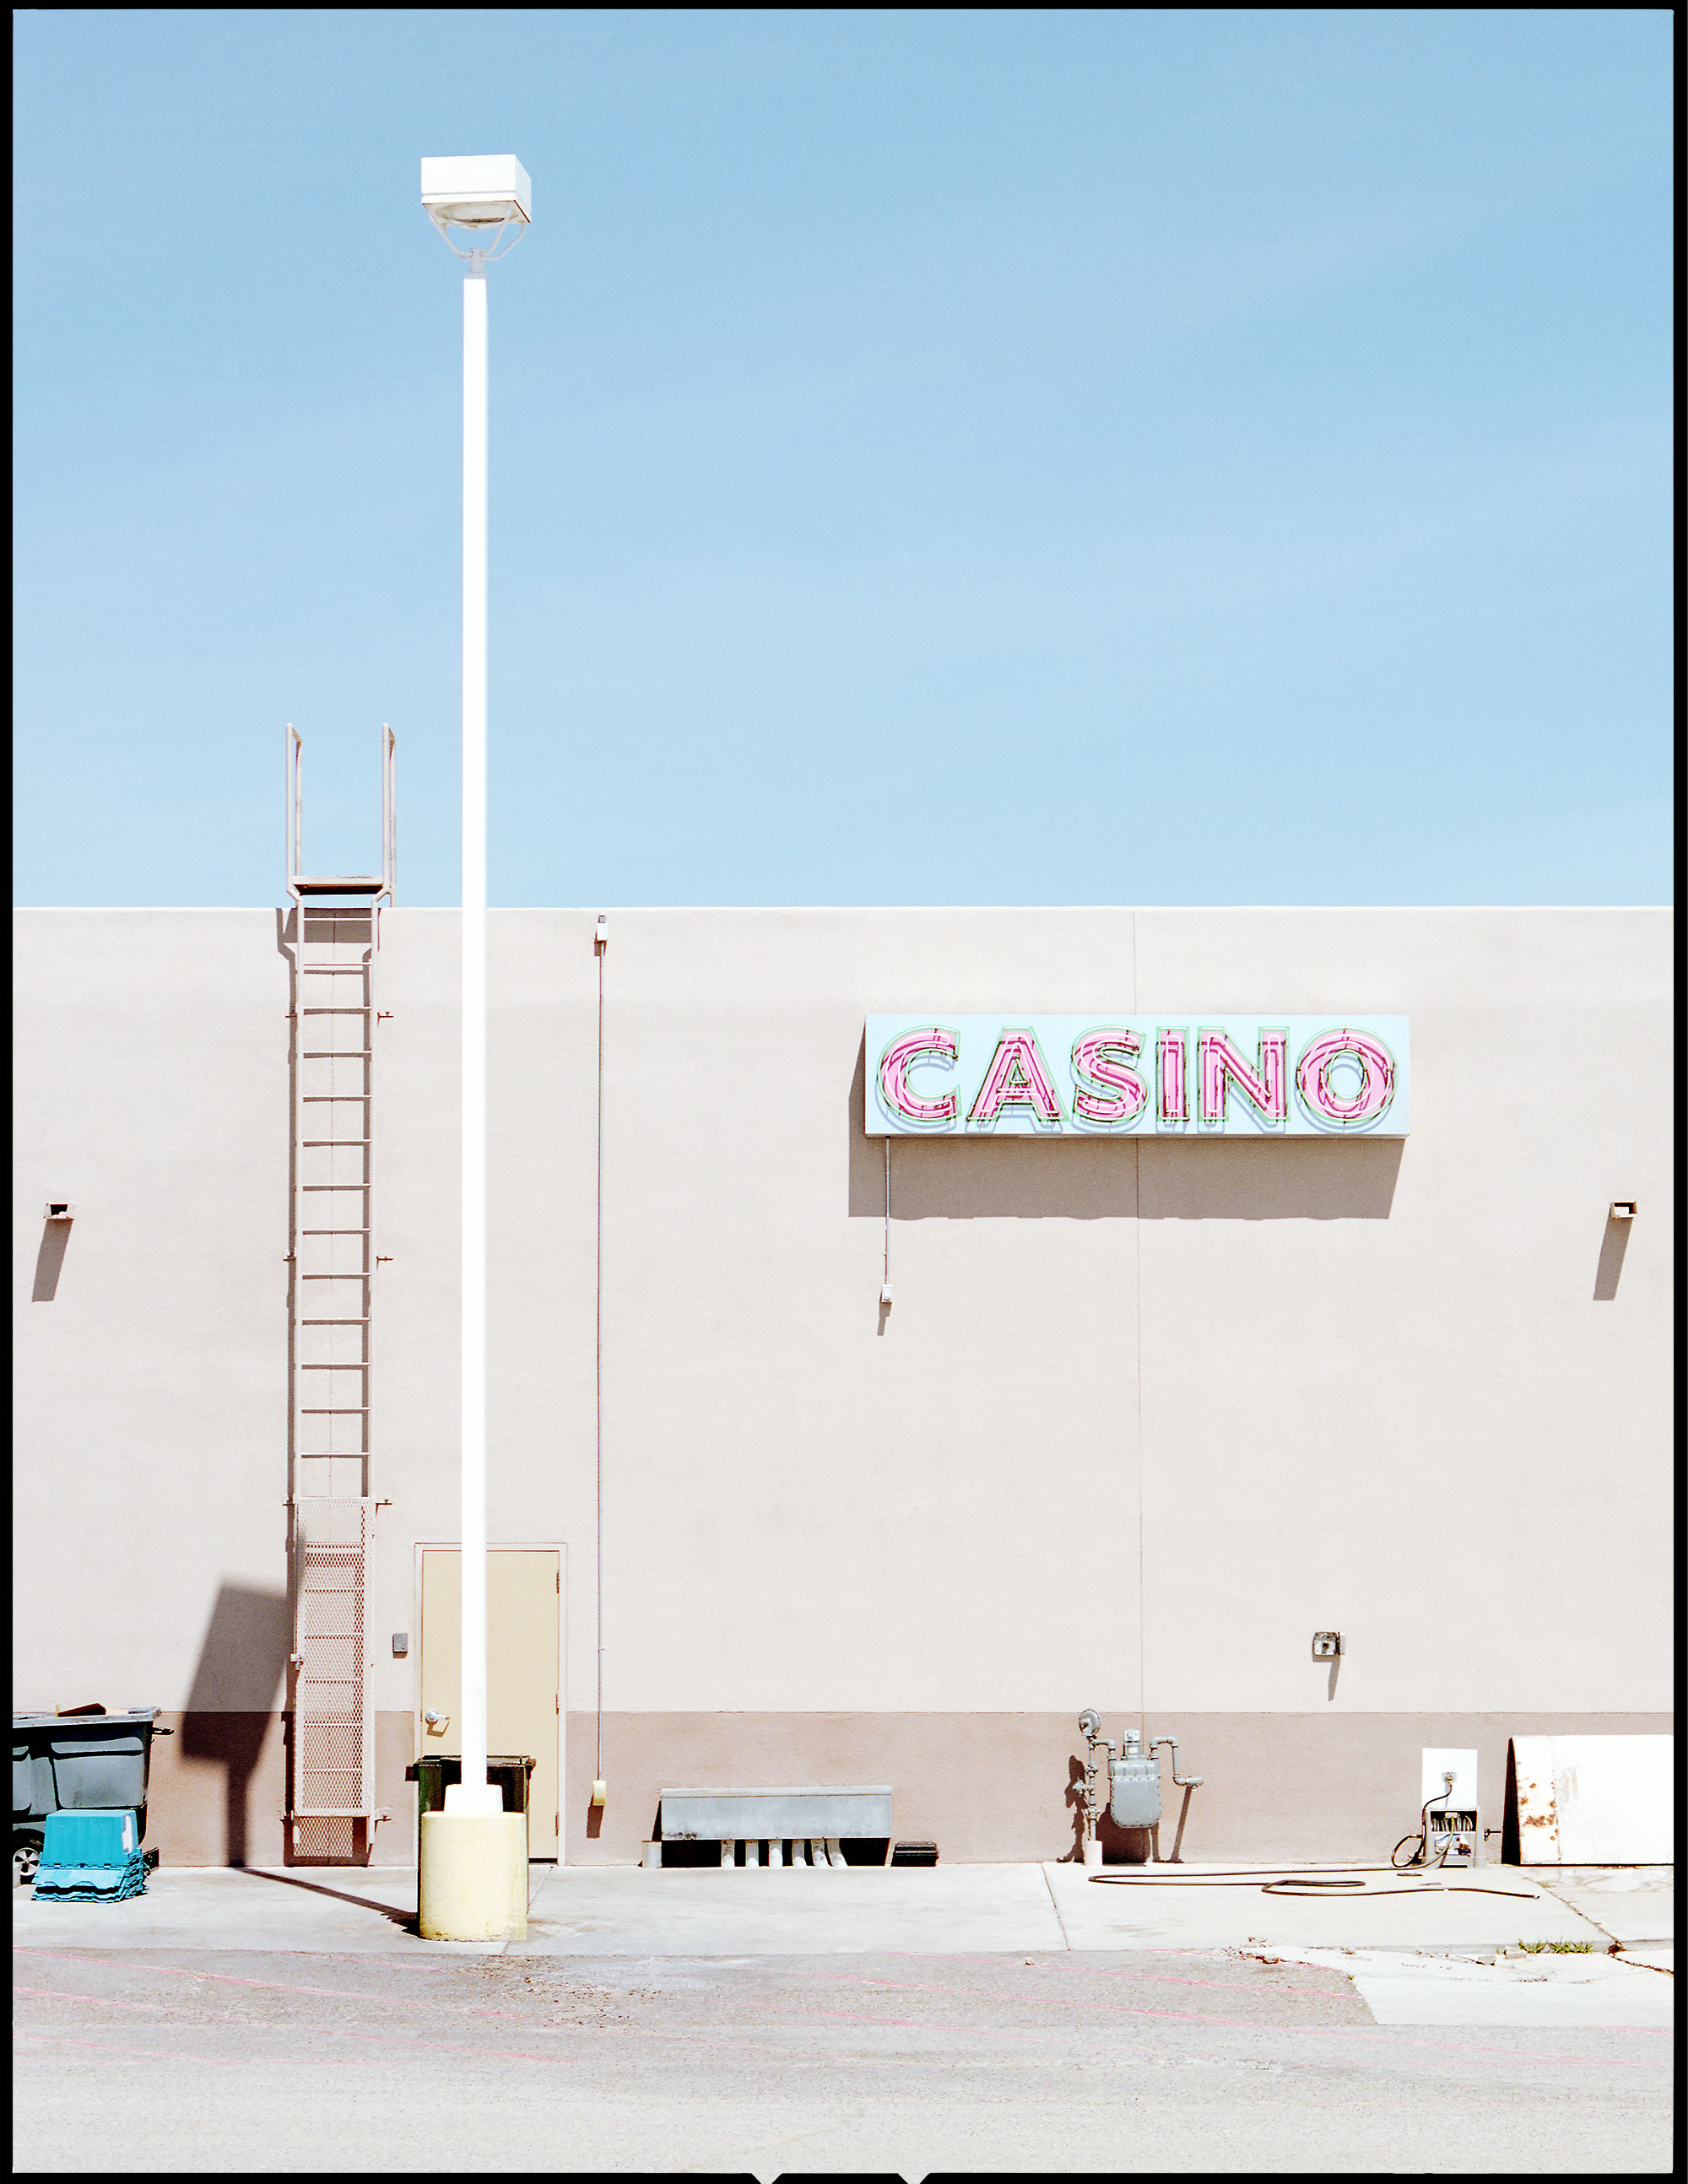 Casino_GasStation_I25_NM